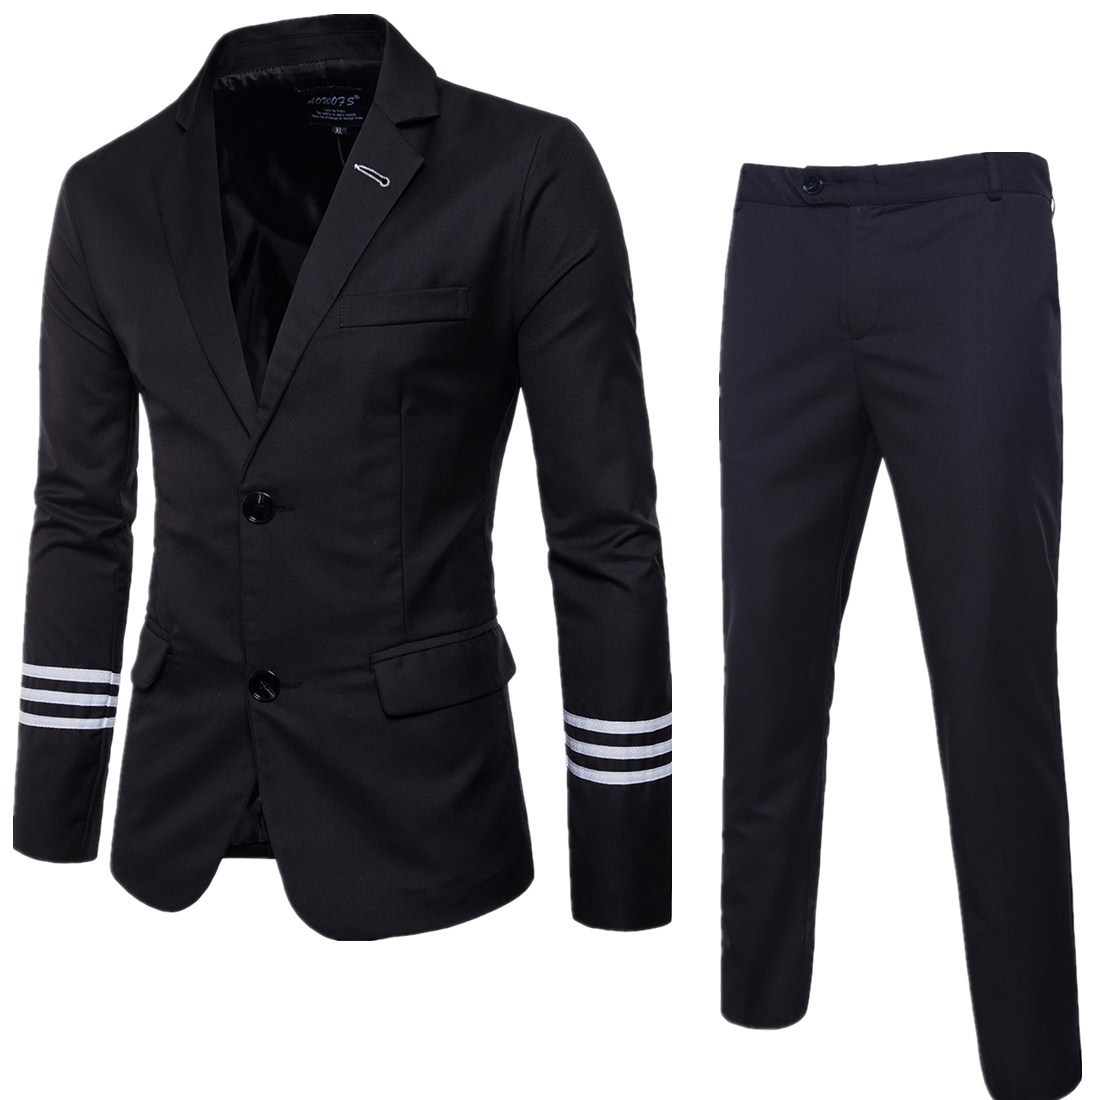 2017 Autumn Clothing Quality Business Leisure Suit Two-Piece Set Groom Best Man Wedding One-Button Suit Set Y909